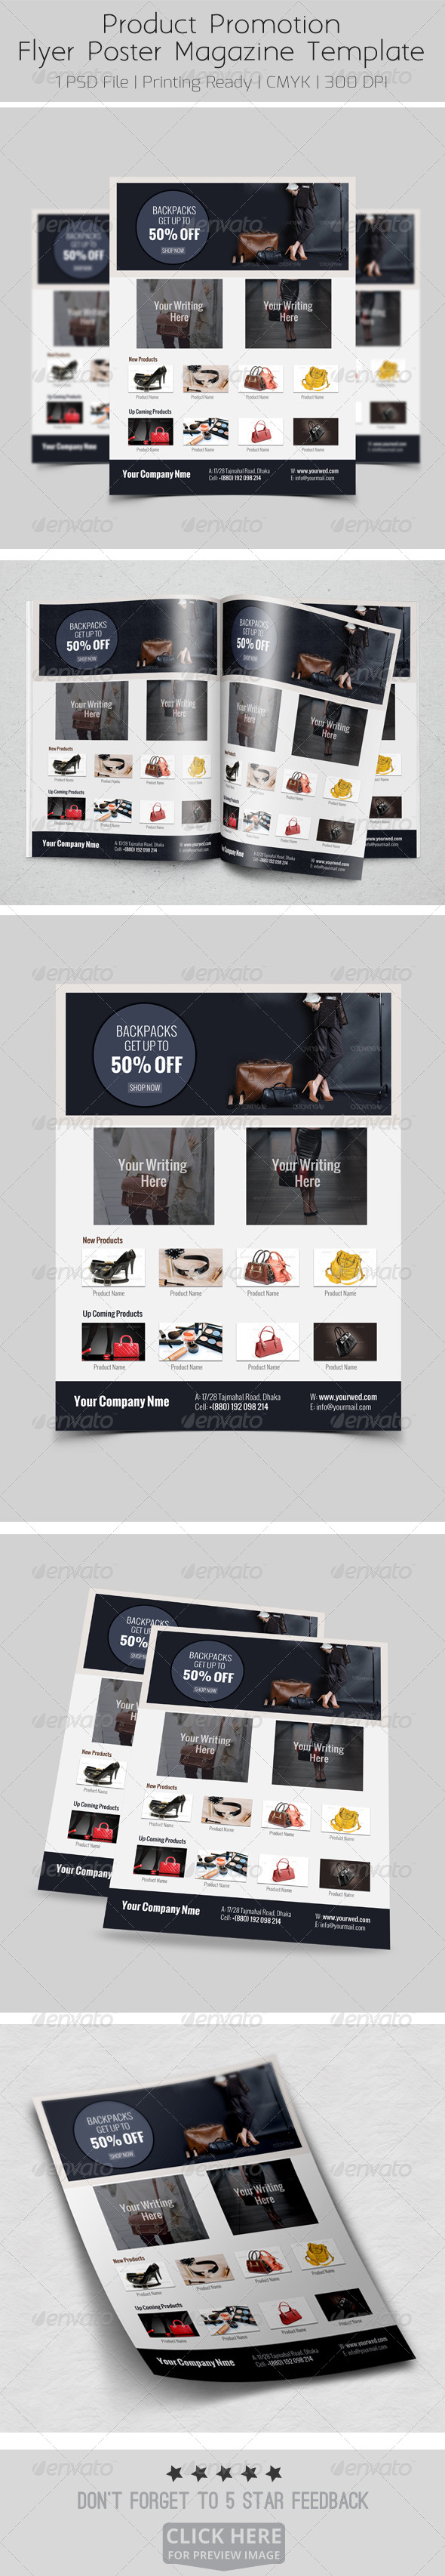 GraphicRiver Product Promotion Flyer Poster Magazine Template 8227187